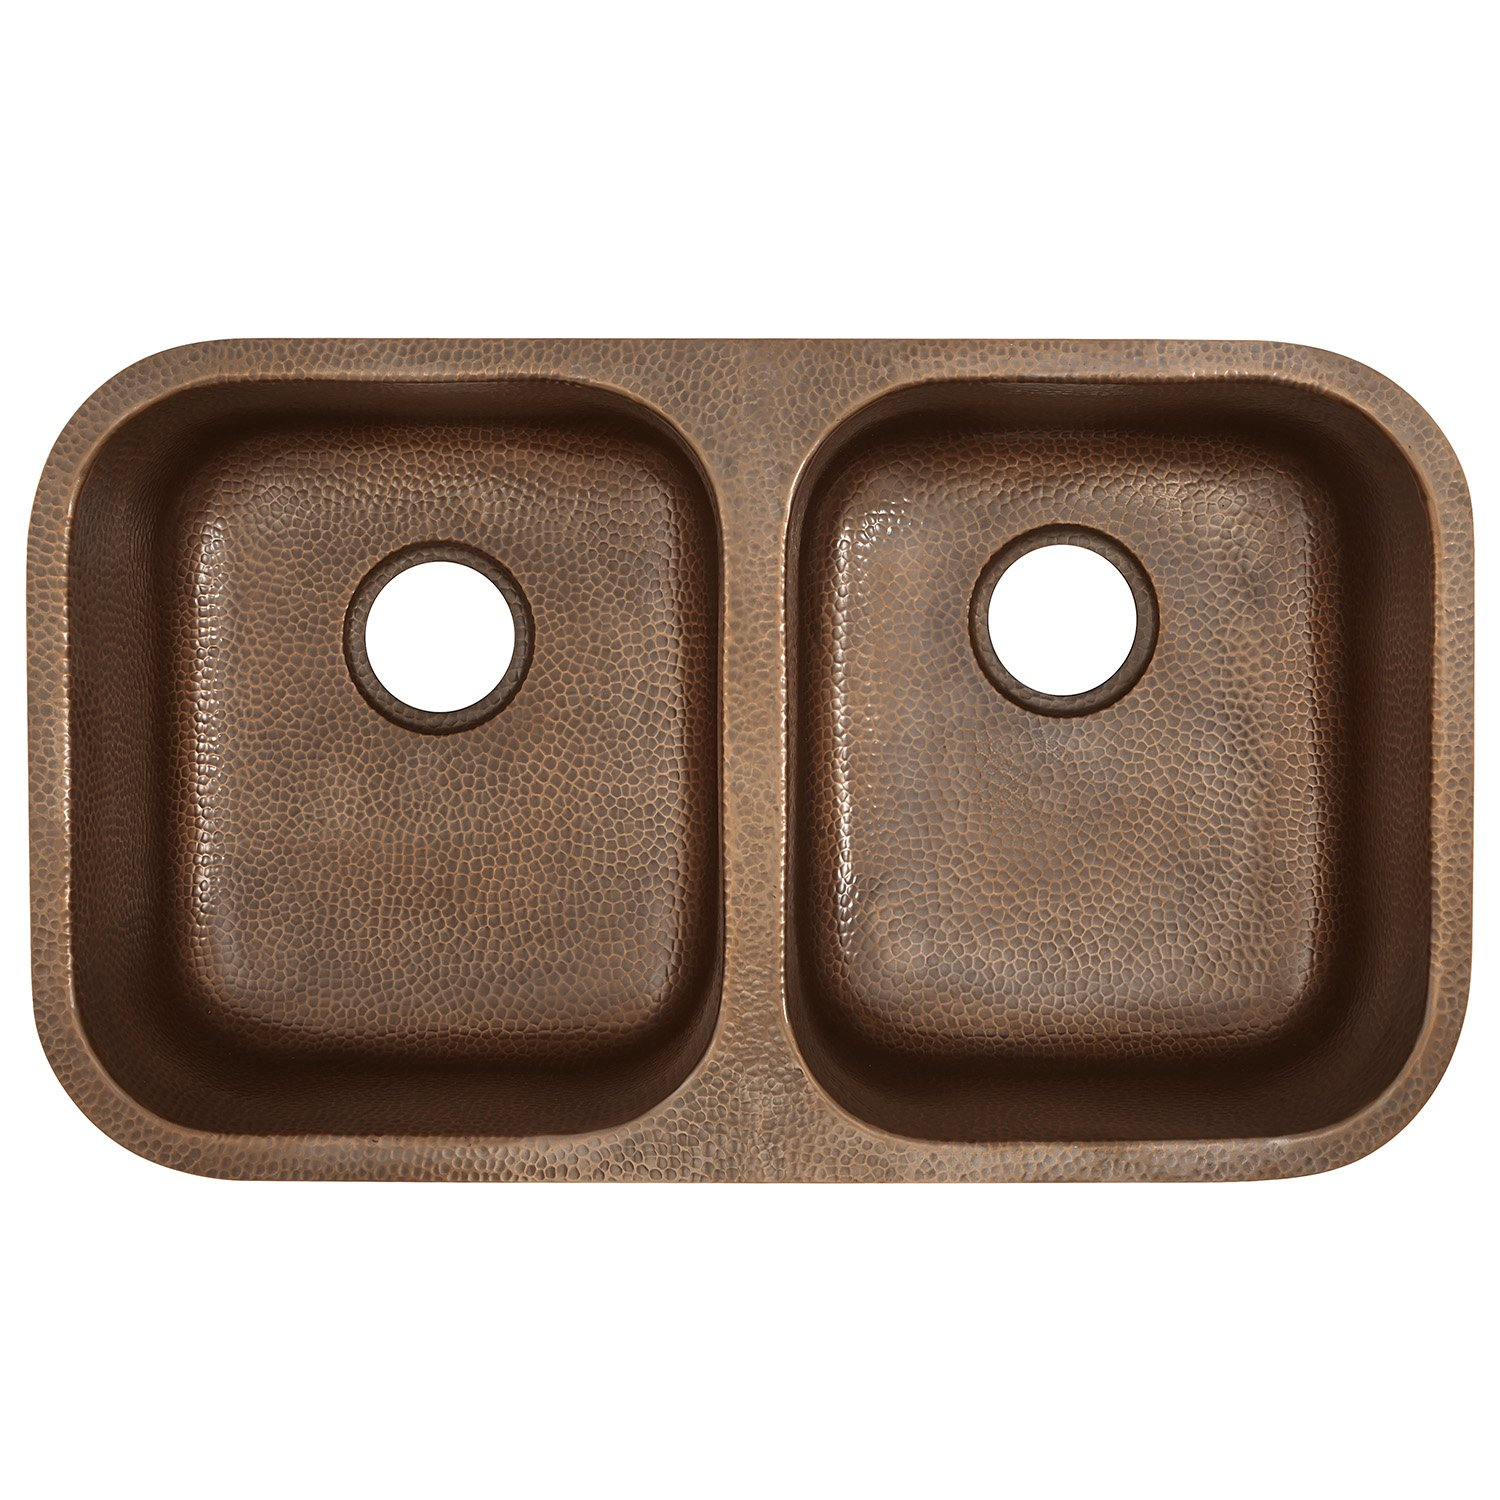 Sinkology SK205-32AC Kandinsky Undermount Handmade Pure Solid Double Bowl Kitchen Sink, 32-1 4 , Antique Copper